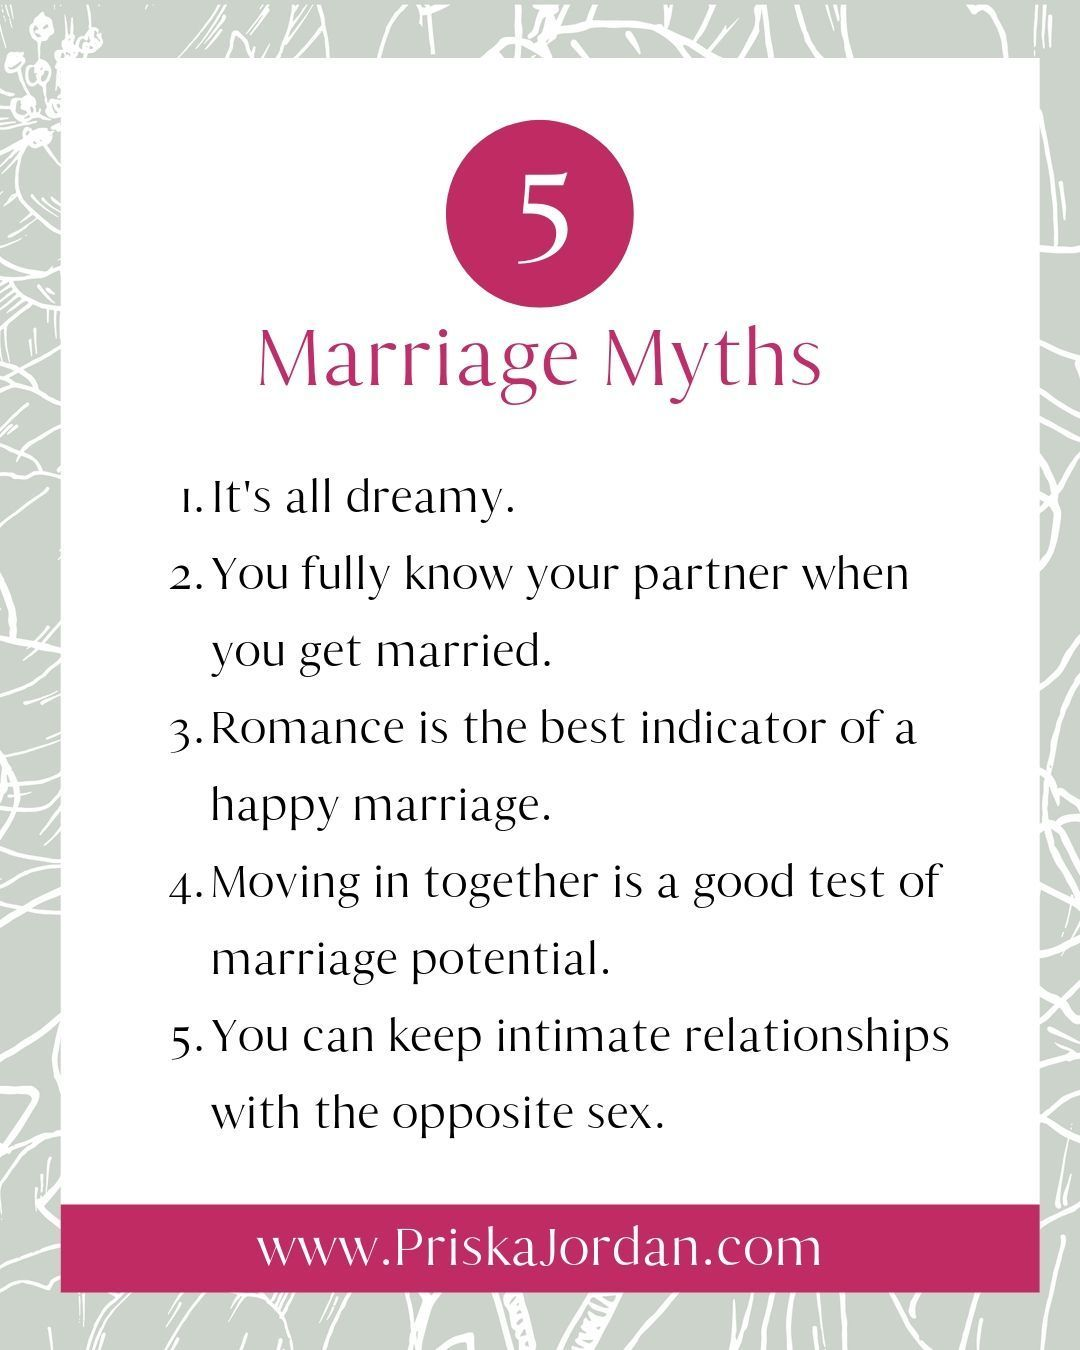 Do You Believe These 5 Marriage Myths